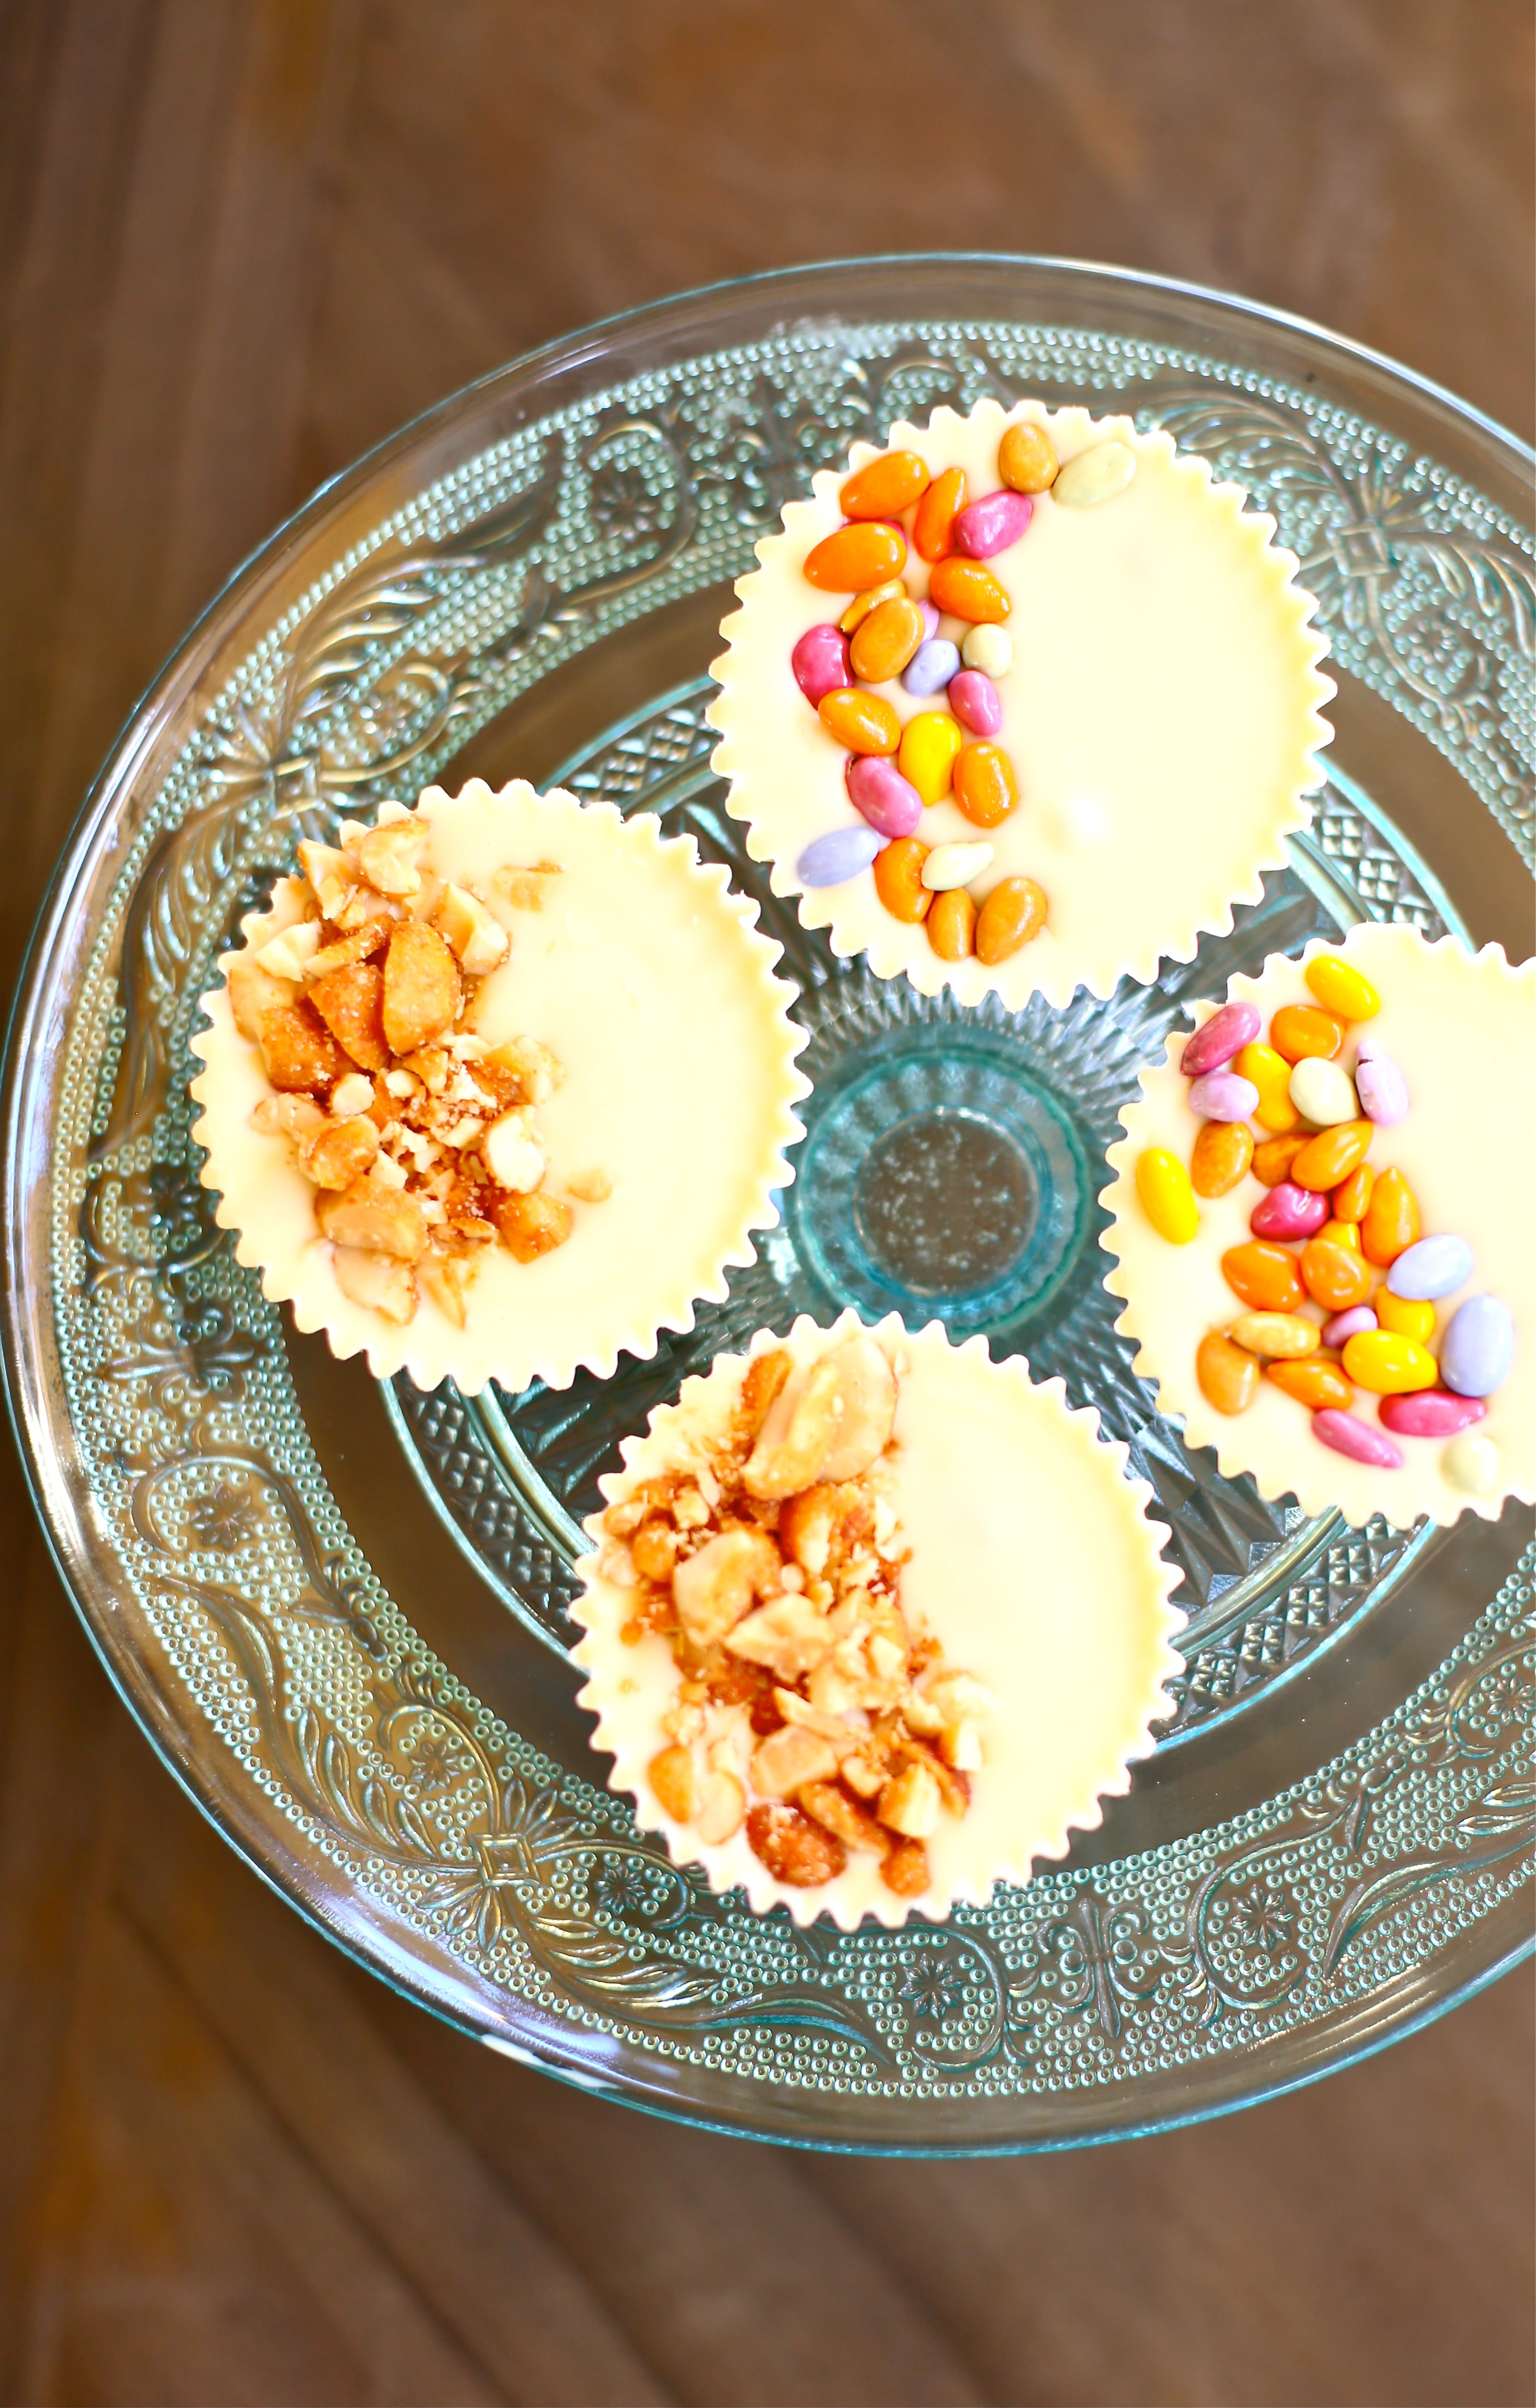 Four white chocolate peanut butter cups with candy and peanut garnishes on a blue plate